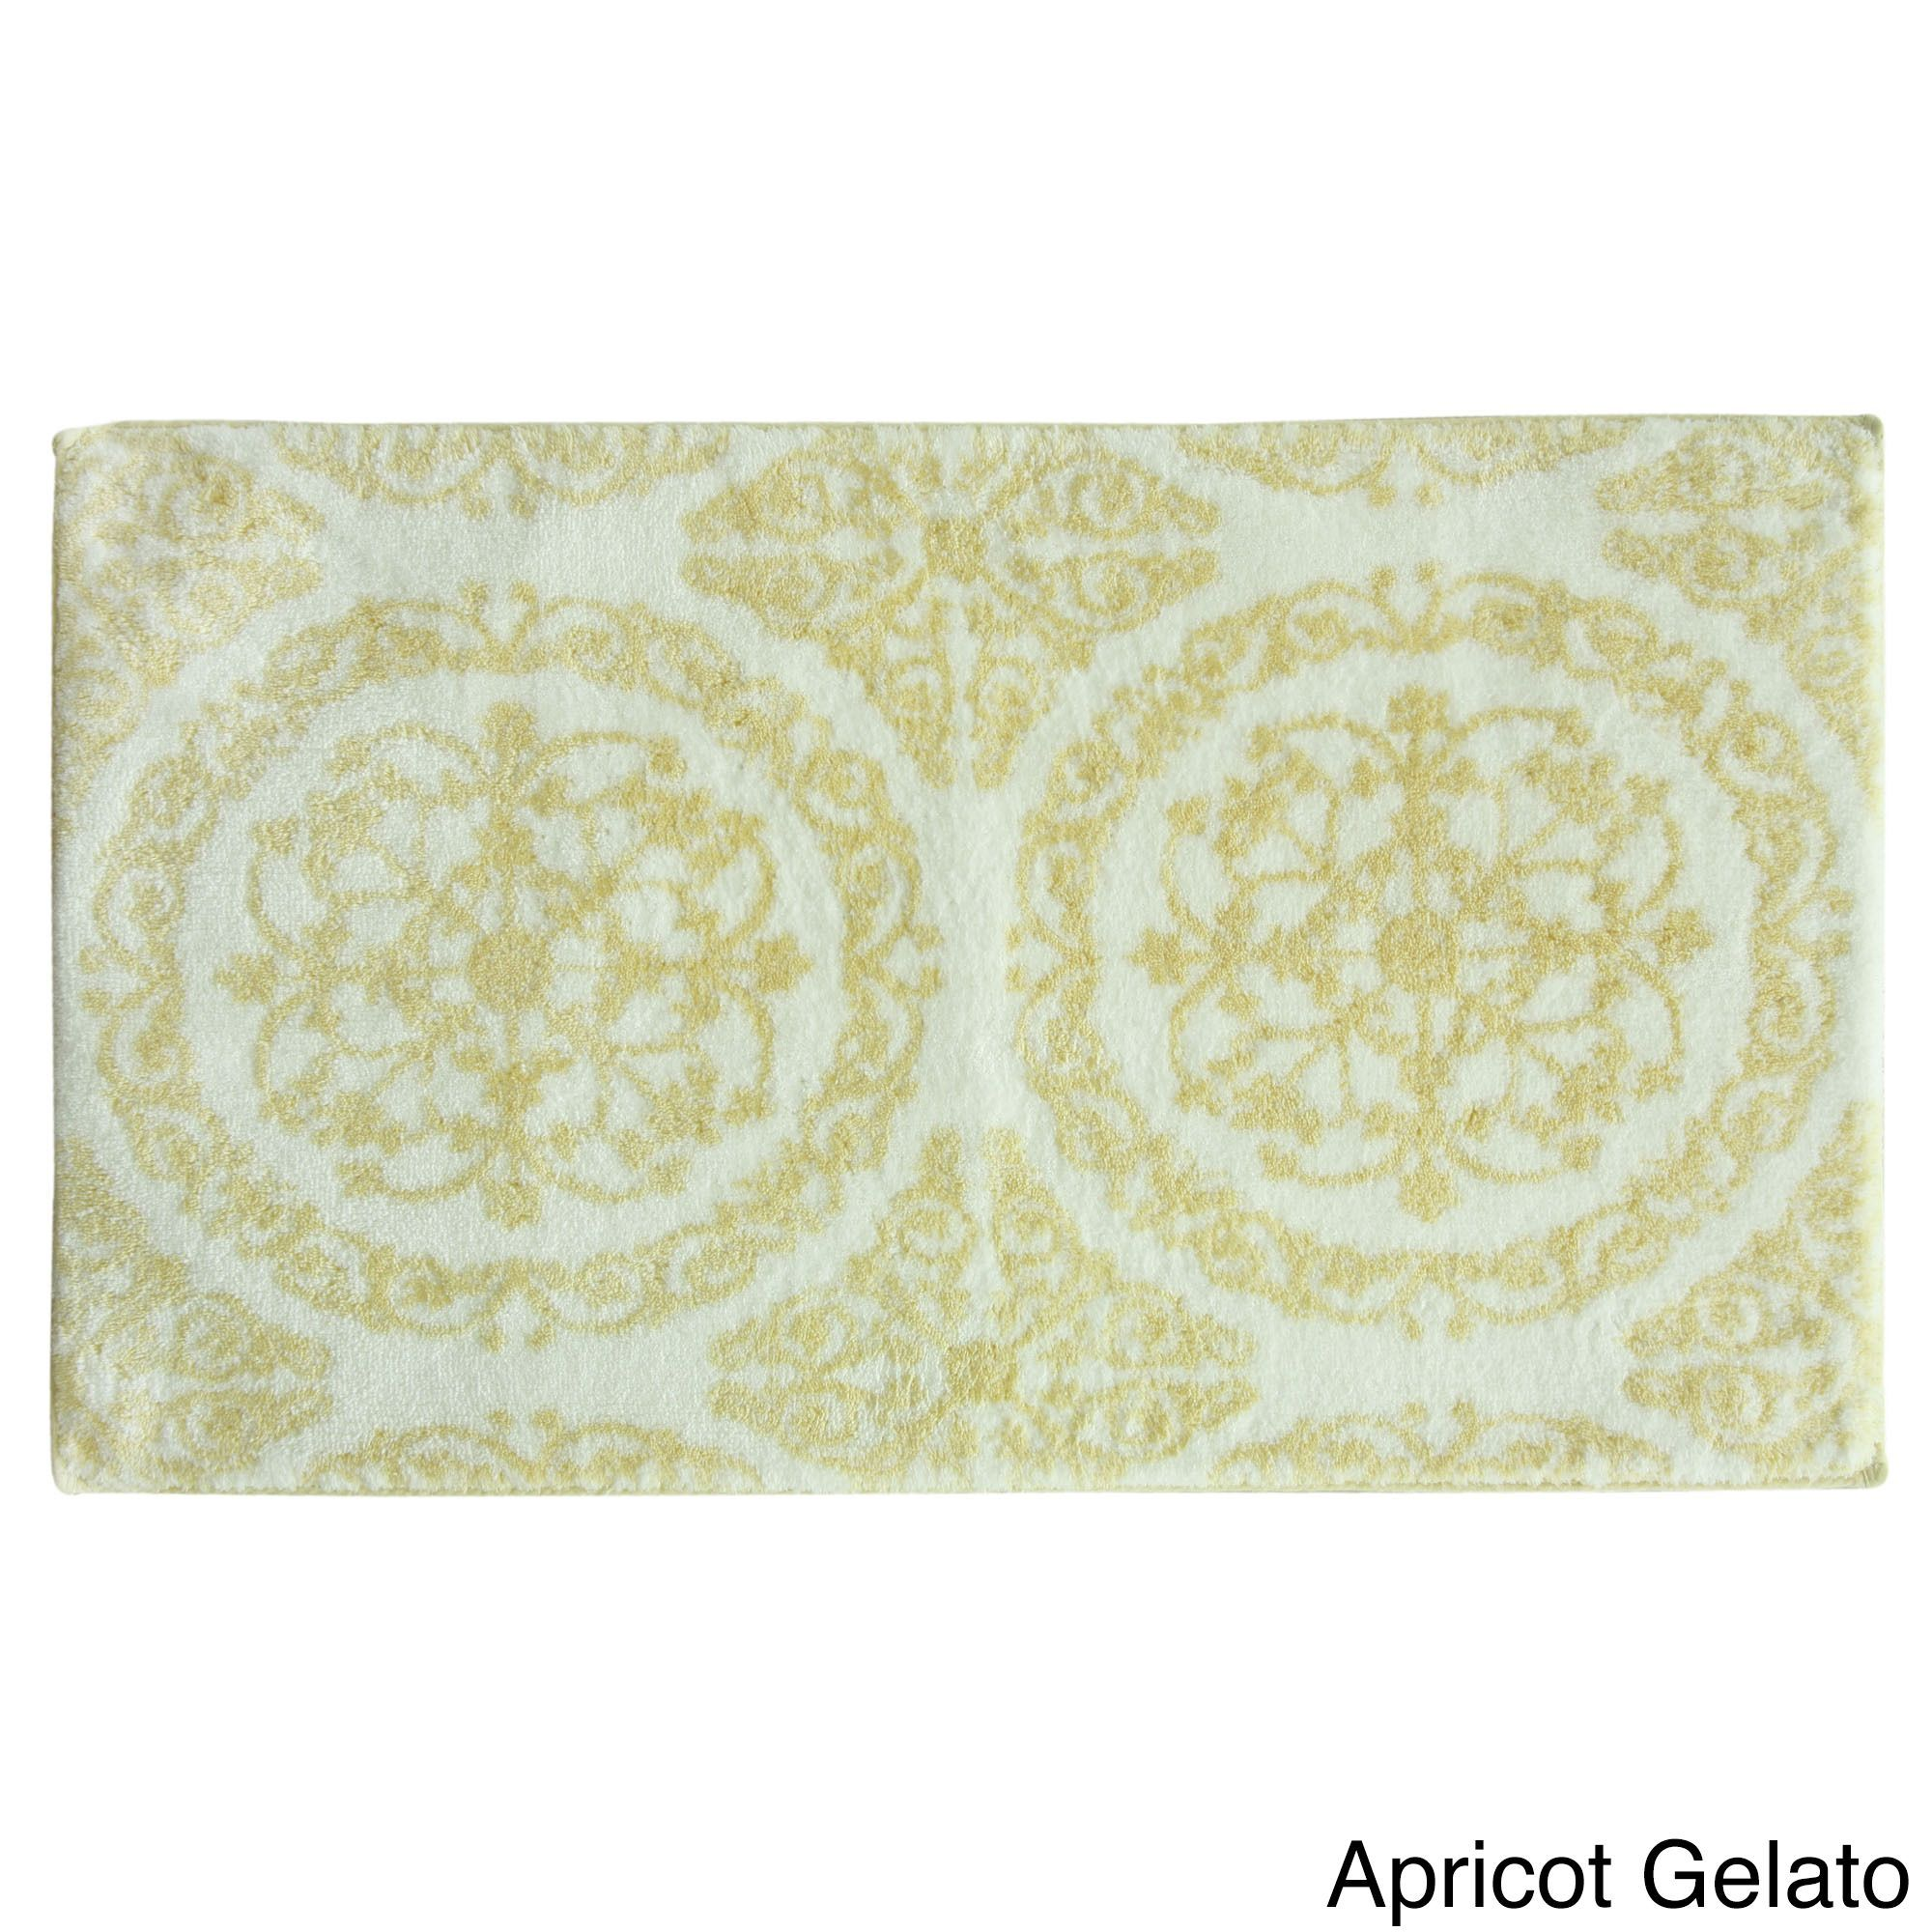 Jessica Simpson Ornamental 21x34 Inch Bath Rug